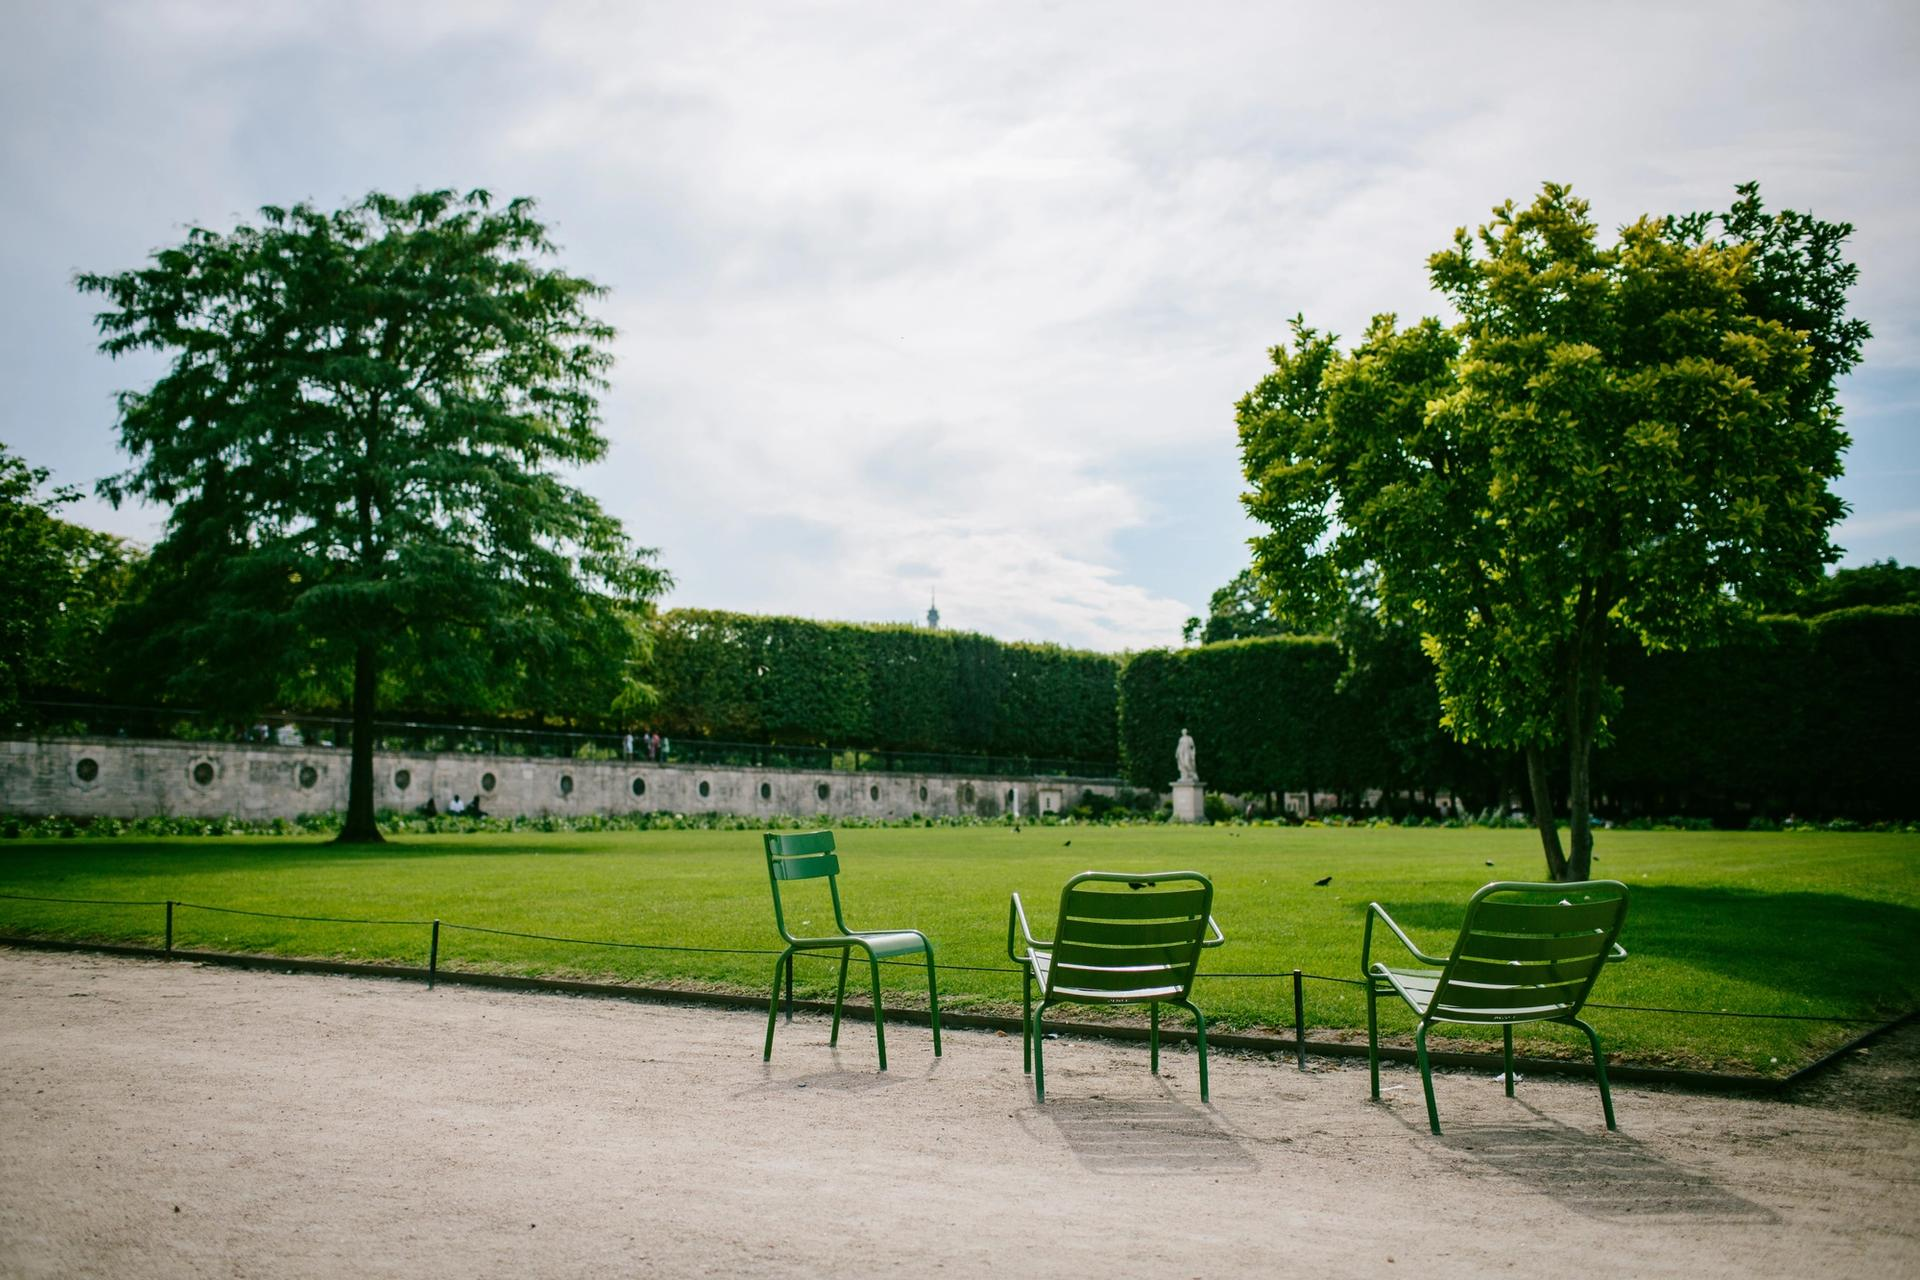 The Tuileries Gardens in Paris will be the home of the new memorial commemorating victims of slavery © Kris Atomic